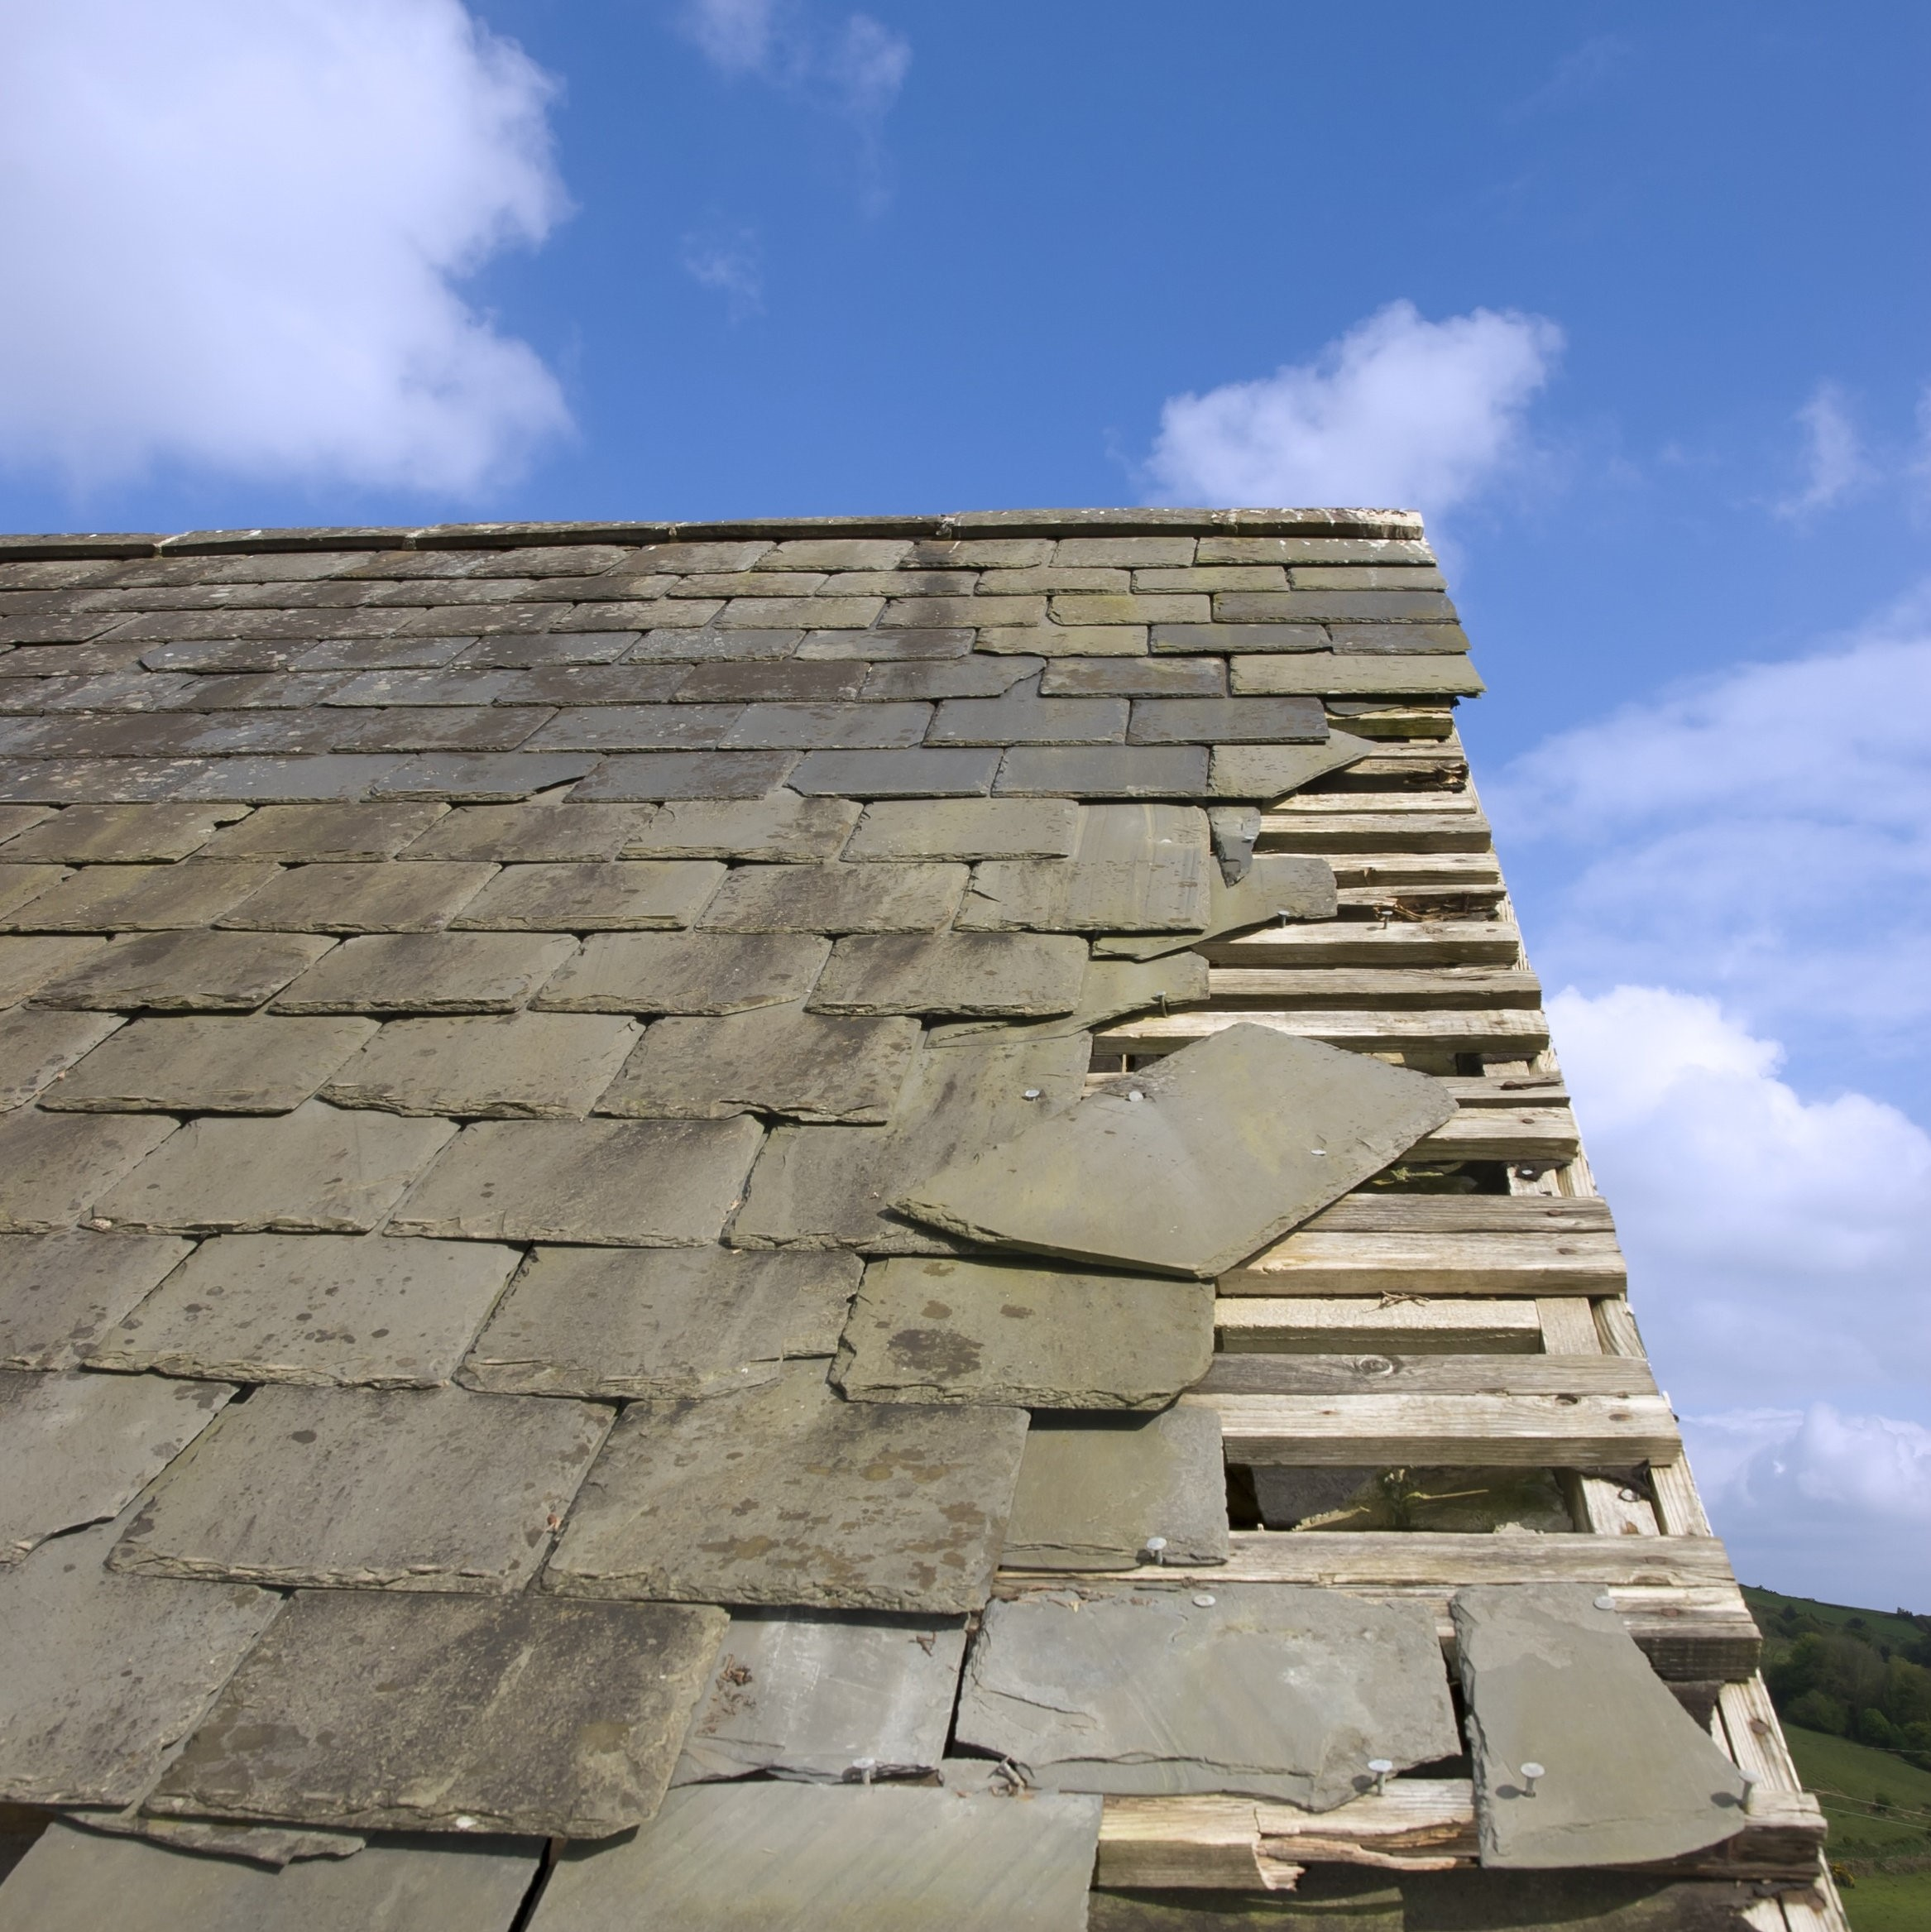 A roof in need of storm damage repair to its slate tiles.